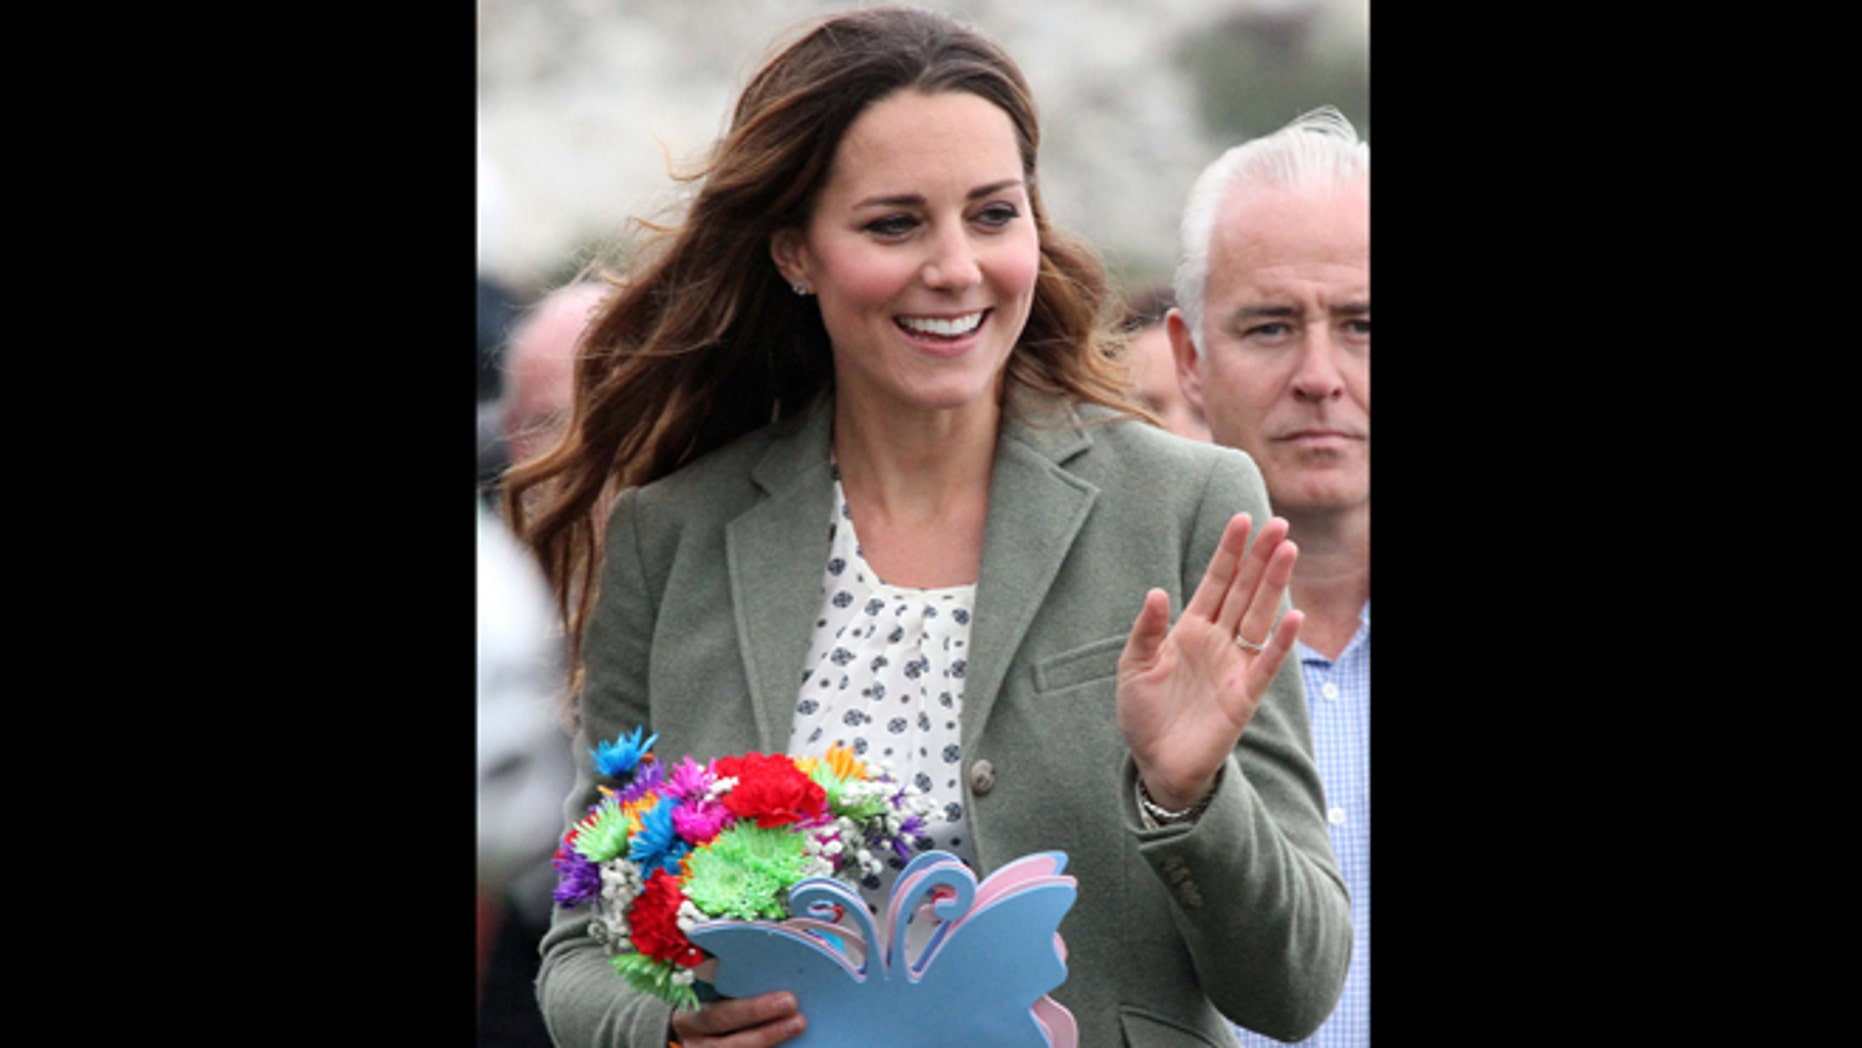 Aug 30, 2013: Kate, Duchess of Cambridge, made her first public appearance since the birth of Prince George as she joined husband Prince William, the Duke Of Cambridge,  at Breakwater Country Park for the start of the Ring O' Fire Anglesey Coastal Ultra Marathon, a three-day, 135-mile foot race around the rugged coast of Anglesey, Wales